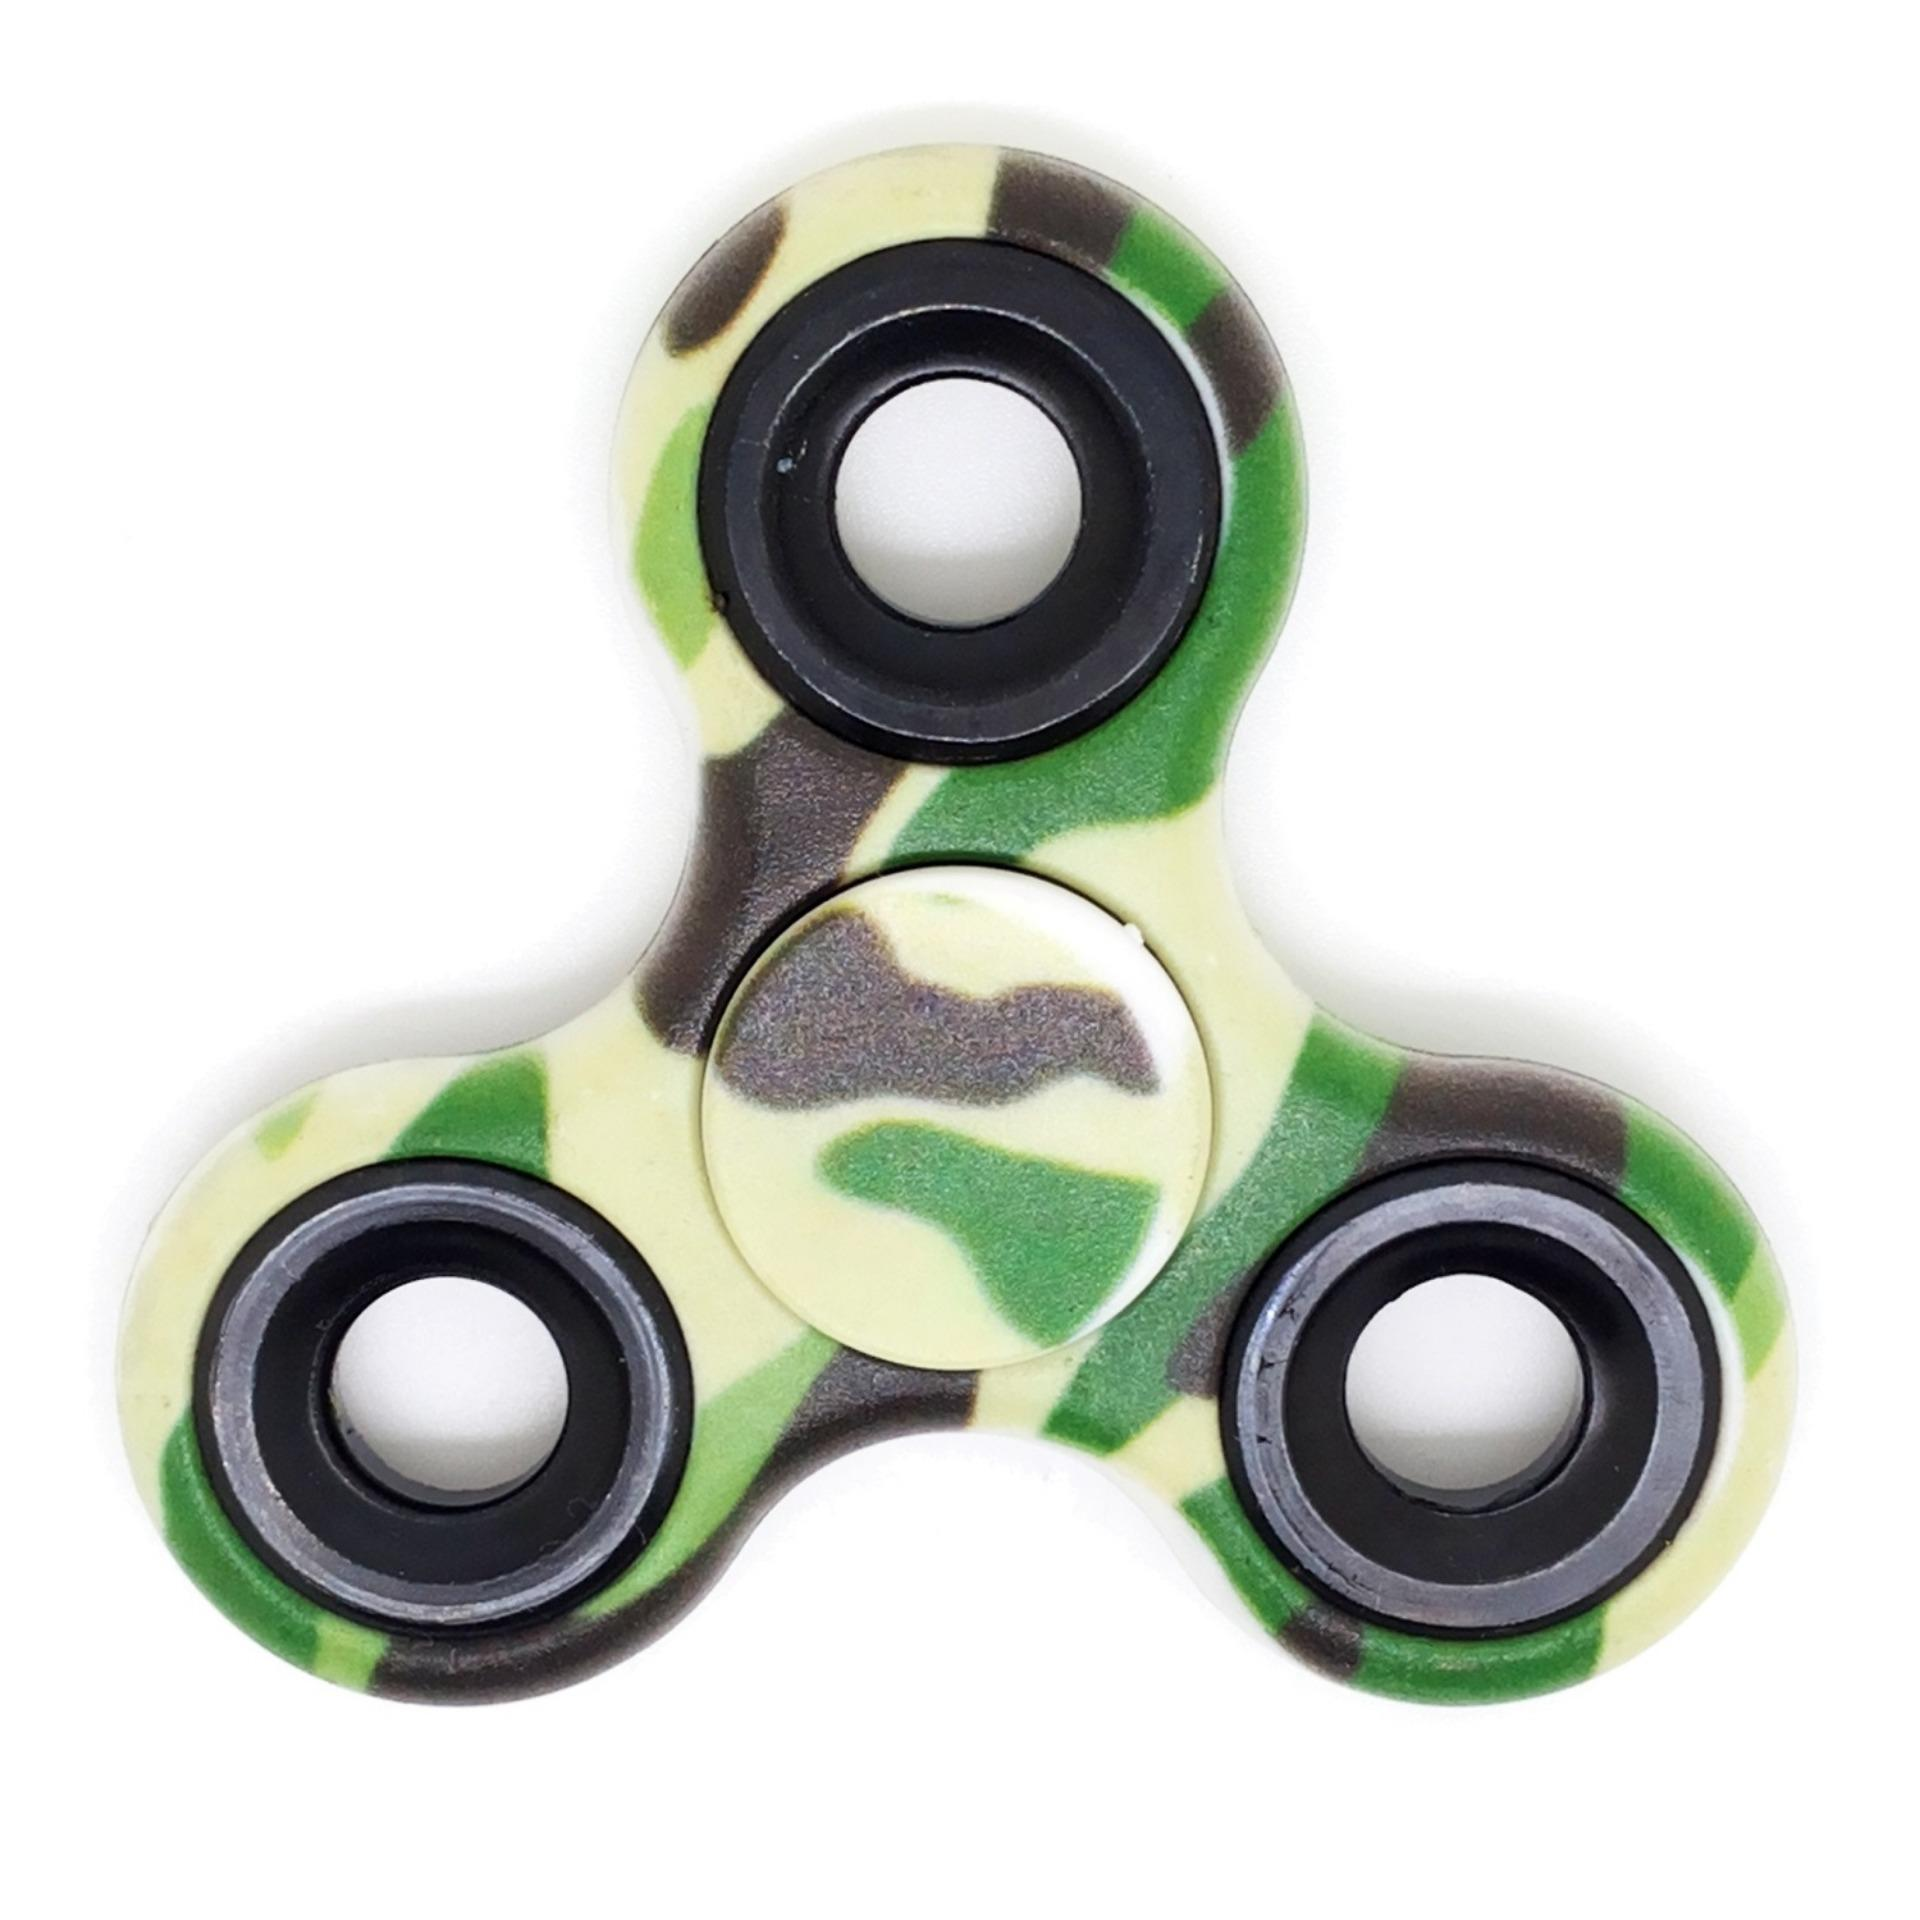 Shopping Comparison Fidget Spinner Camouflage Camo Metal Hand Finger Toys for Focus Anxiety & Stress Relief EDC Tri-Spinner - Mainan Jari Tangan Besi Putar ...